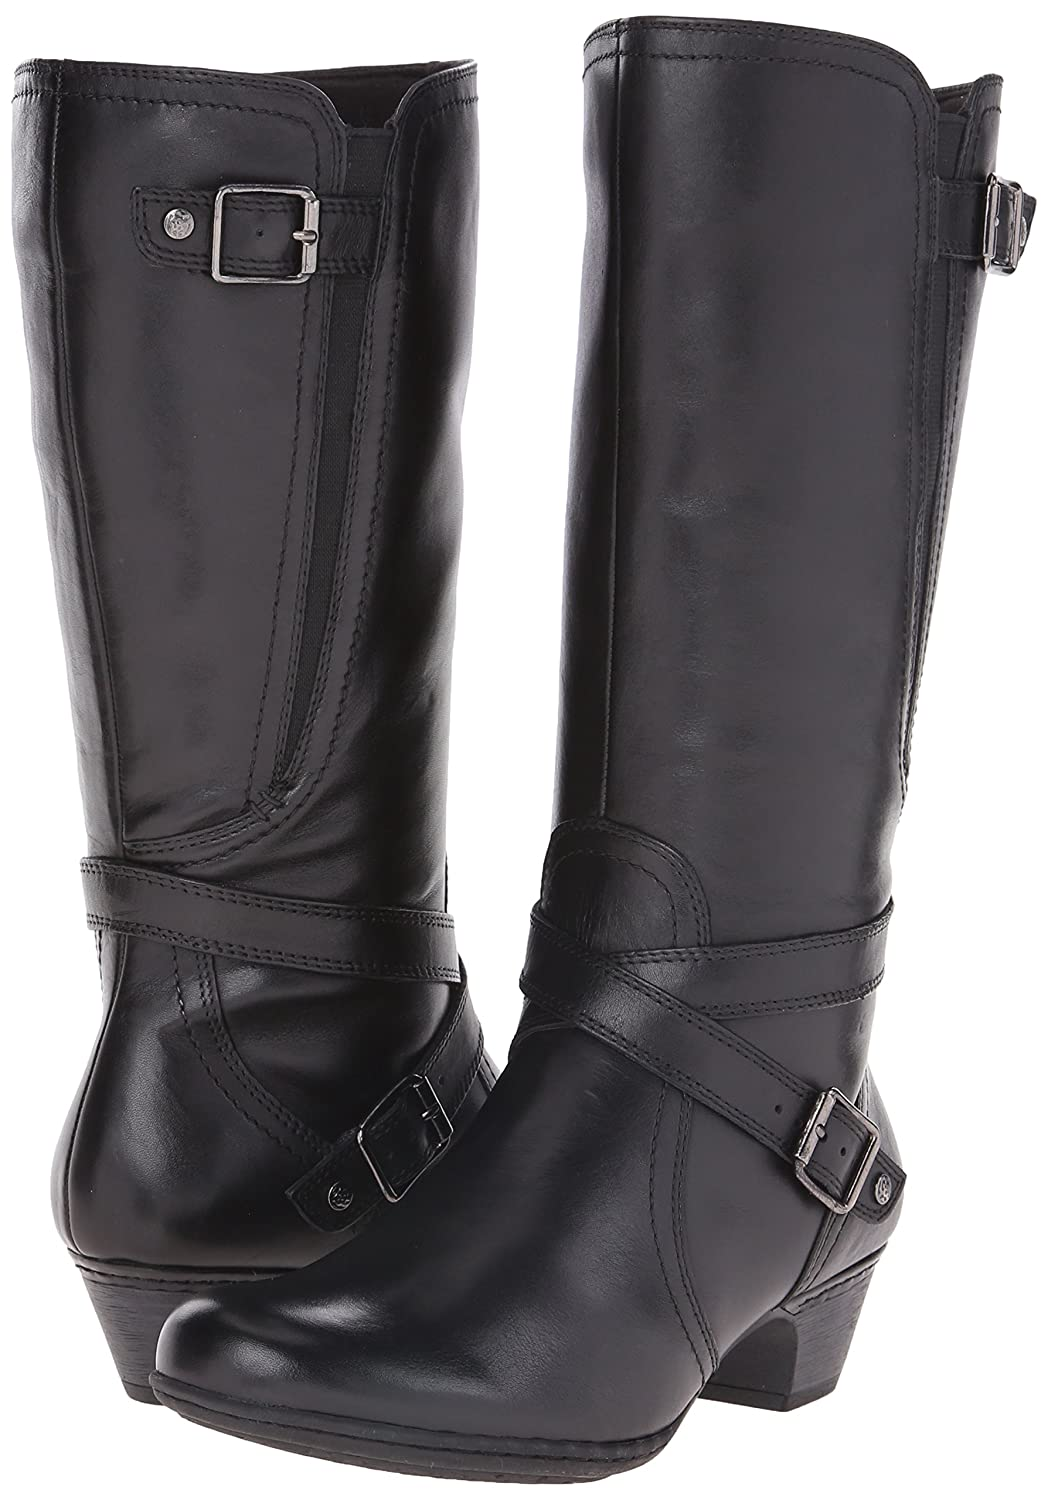 Women's Ashlyn Strappy Leather Boots - DeluxeAdultCostumes.com